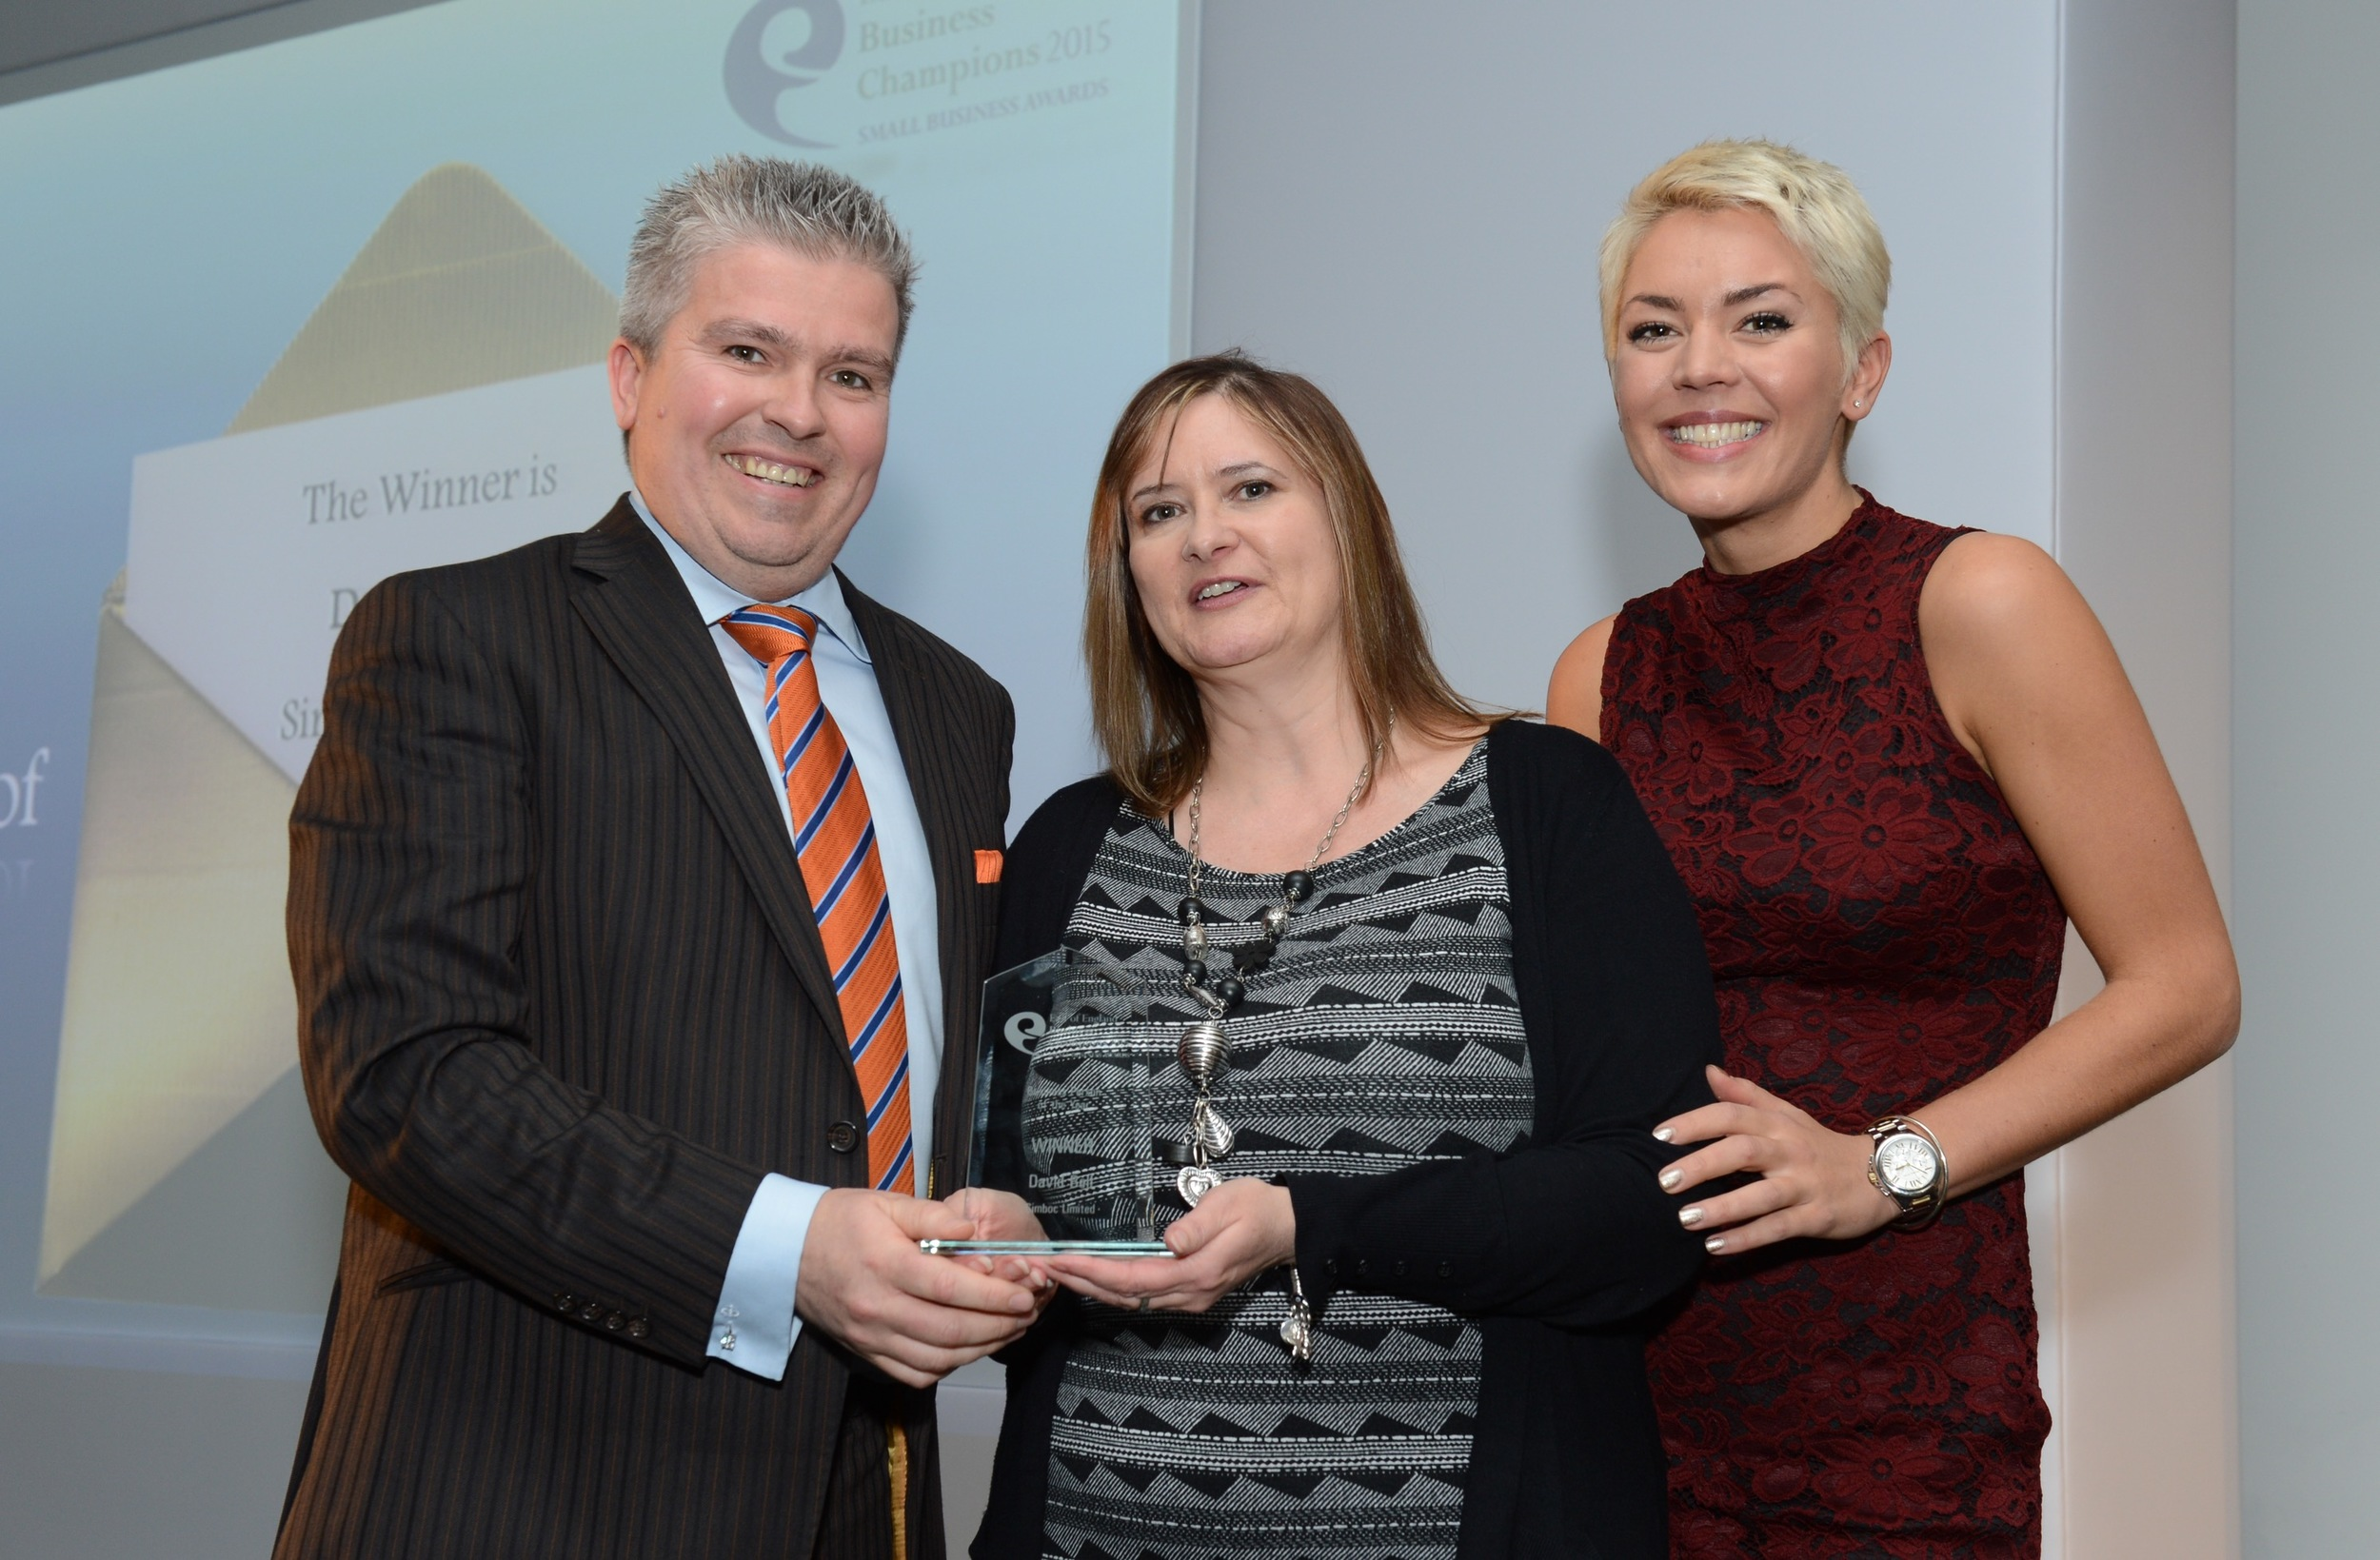 East of England Business Champion